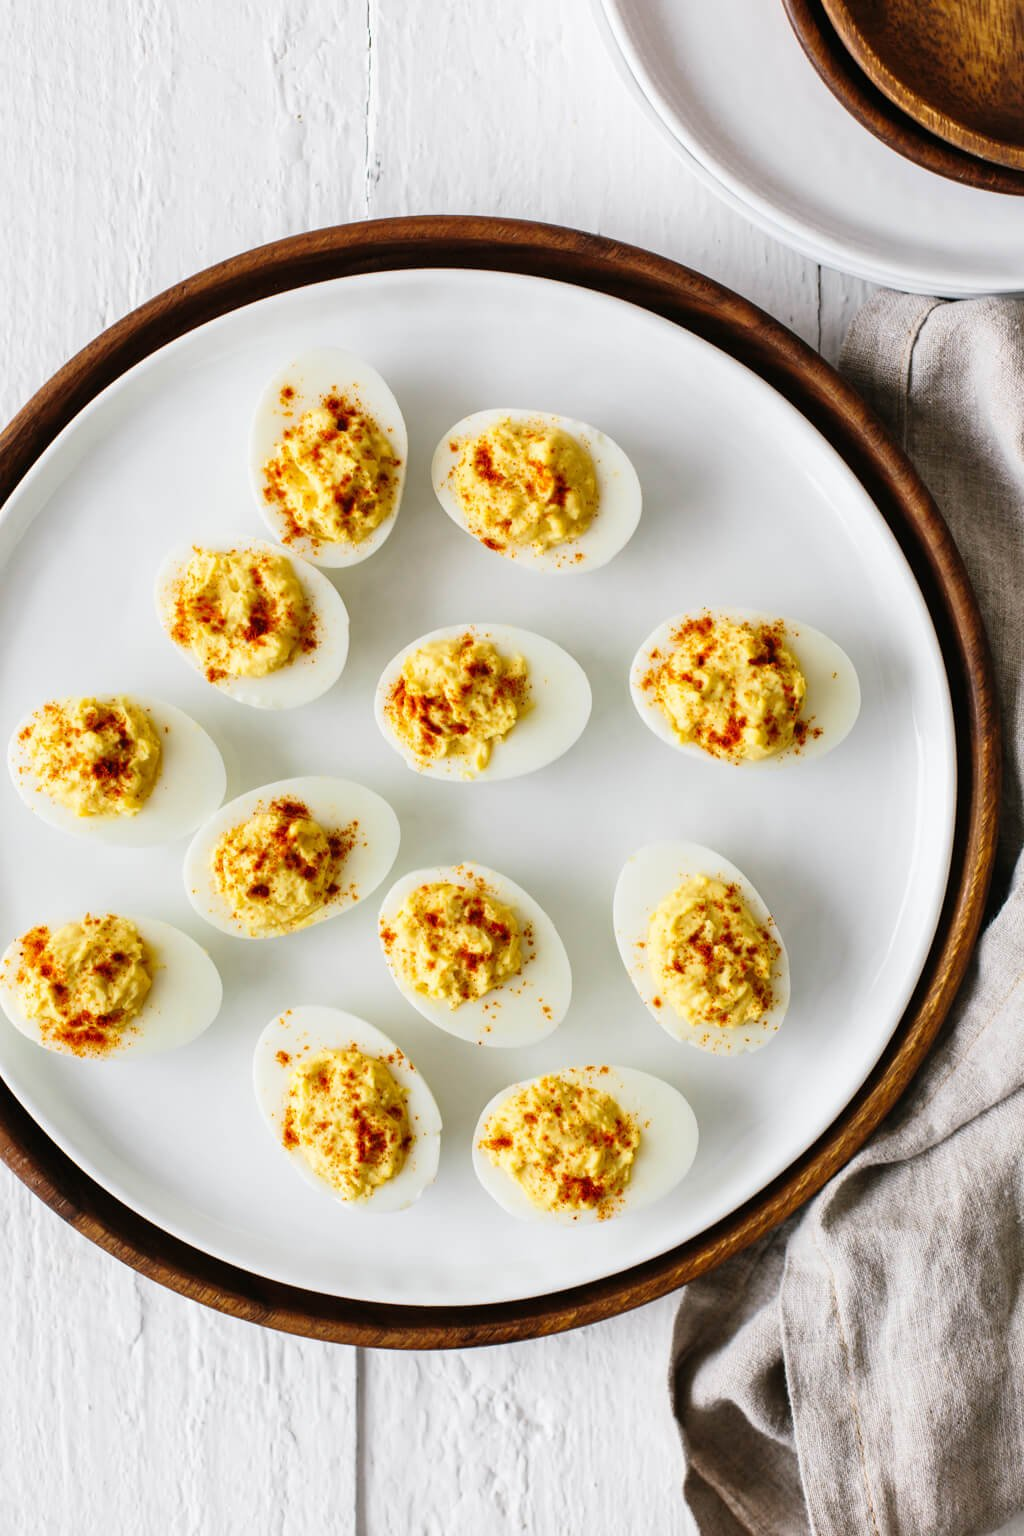 Deviled Eggs - The Classic Recipe